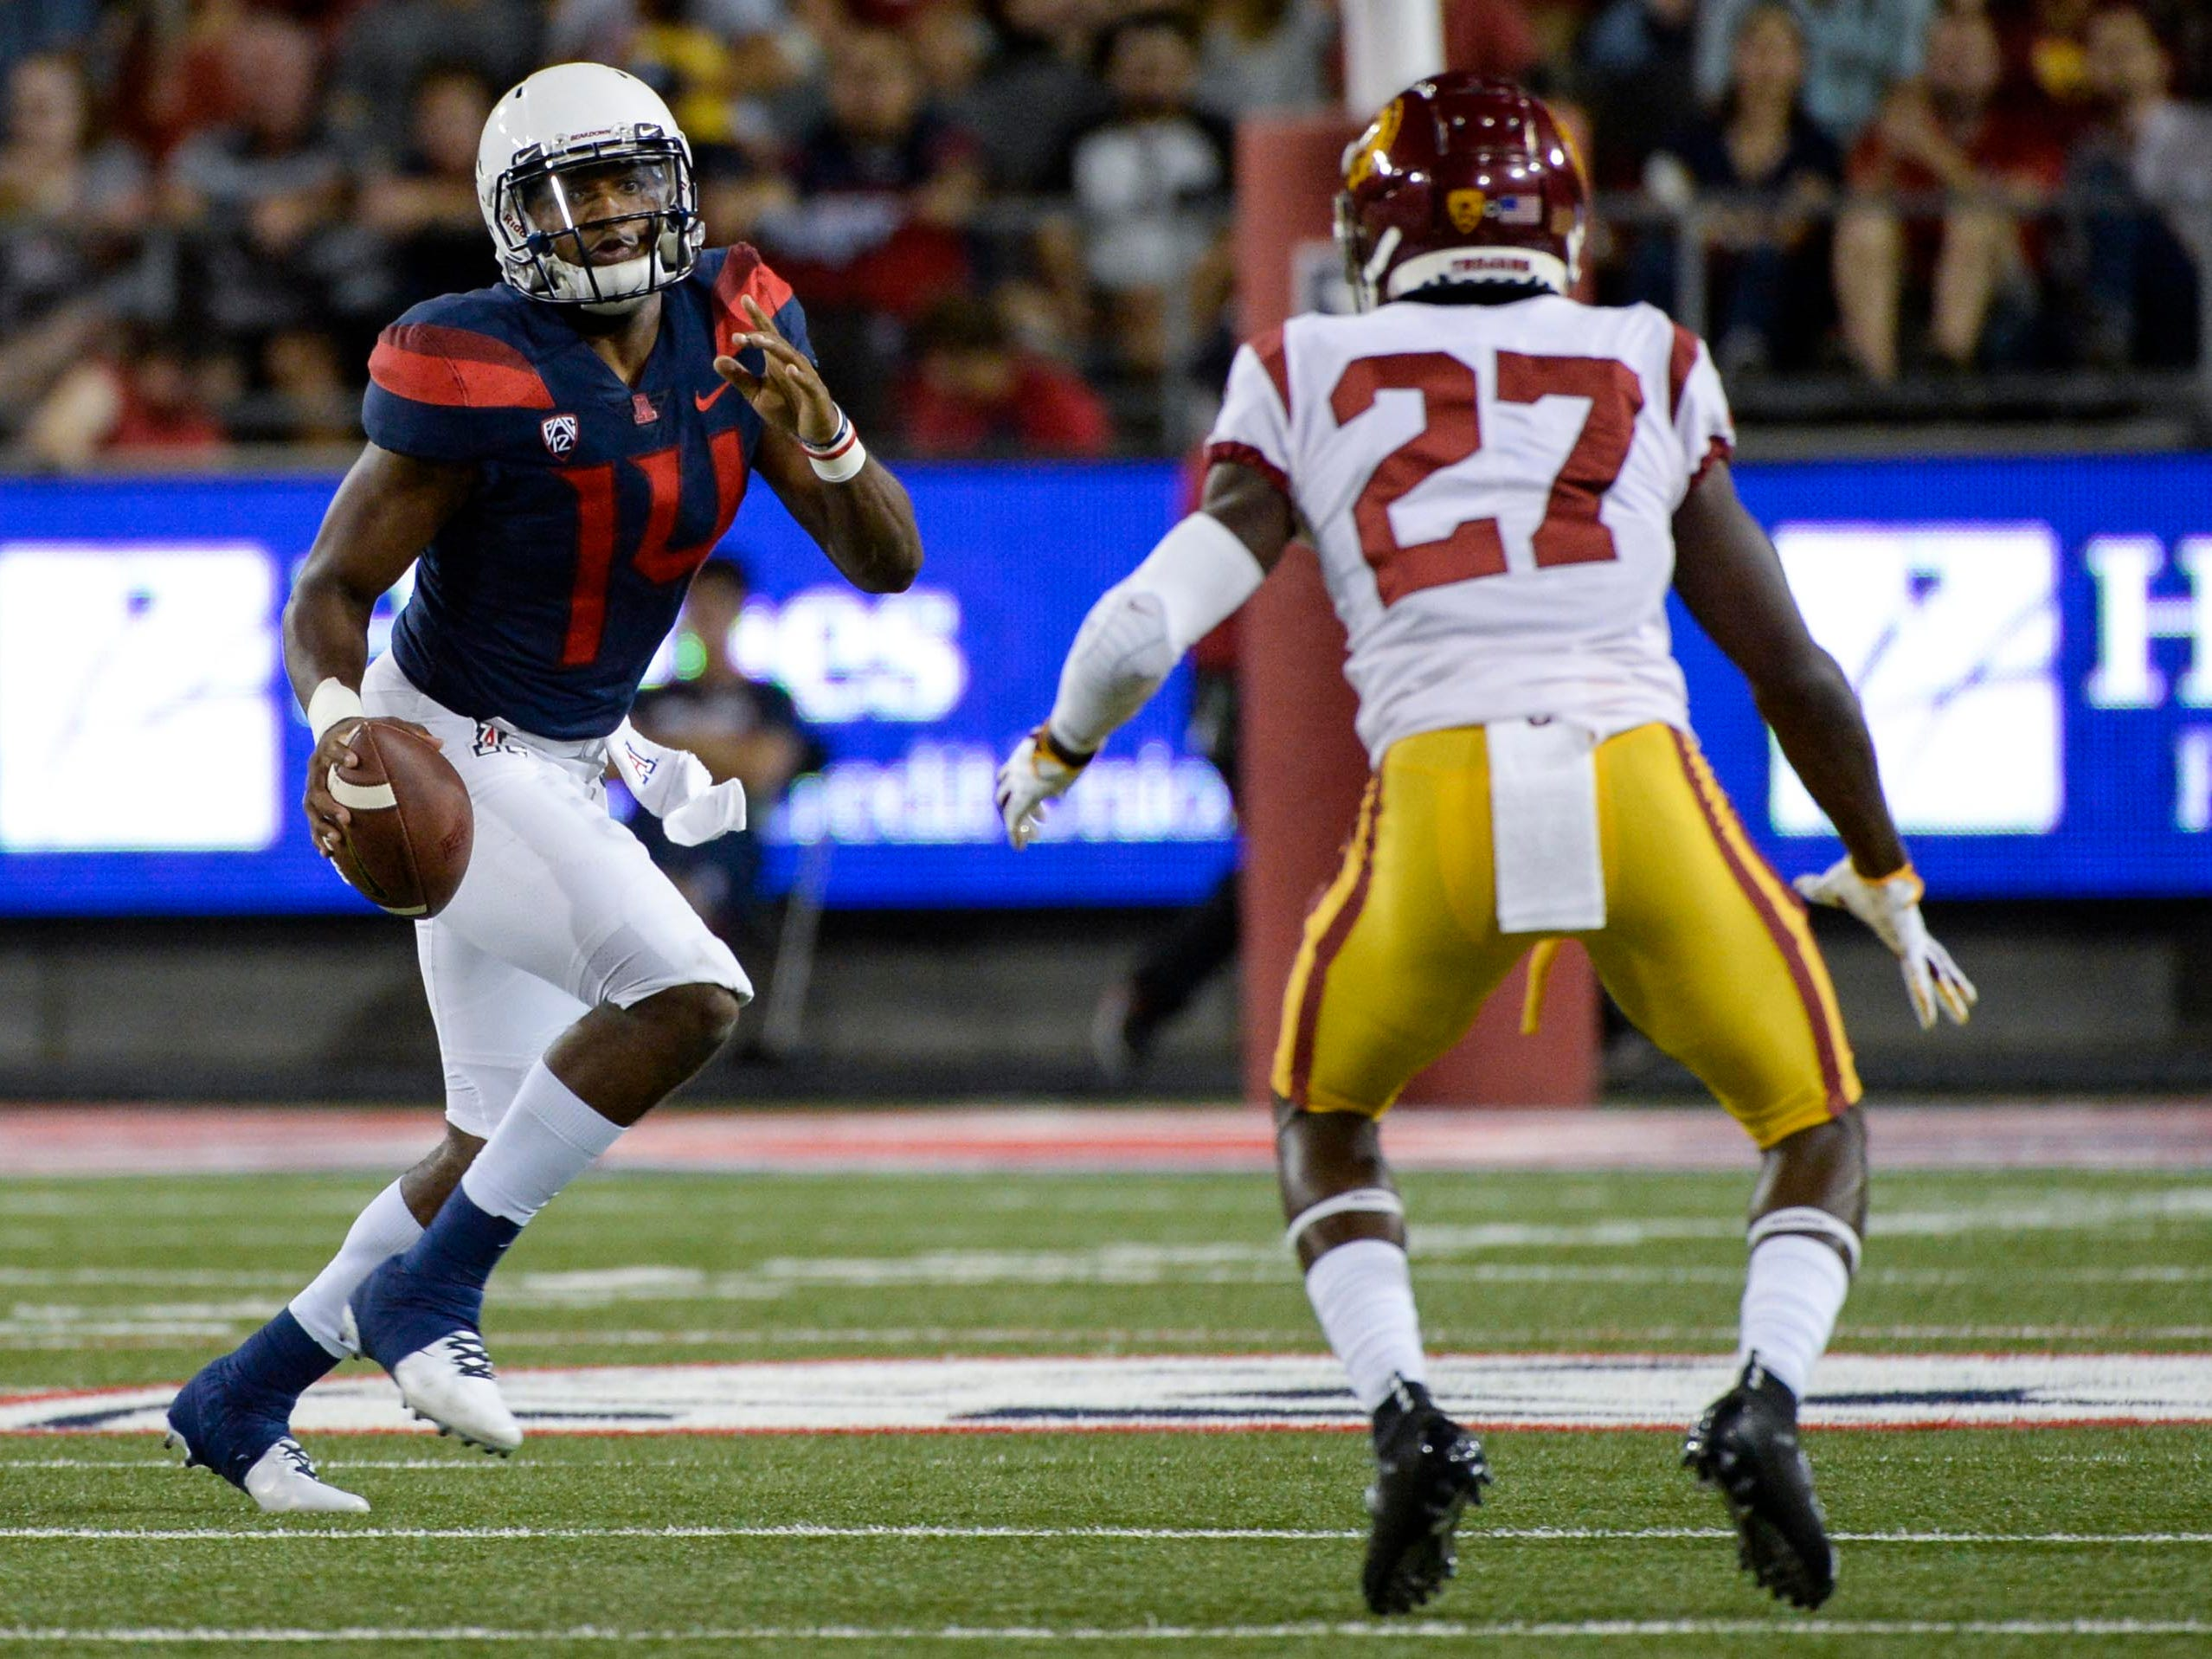 Sep 29, 2018; Tucson, AZ, USA; Arizona Wildcats quarterback Khalil Tate (14) looks to pass as Southern California Trojans cornerback Ajene Harris (27) defends during the first half at Arizona Stadium. Mandatory Credit: Casey Sapio-USA TODAY Sports